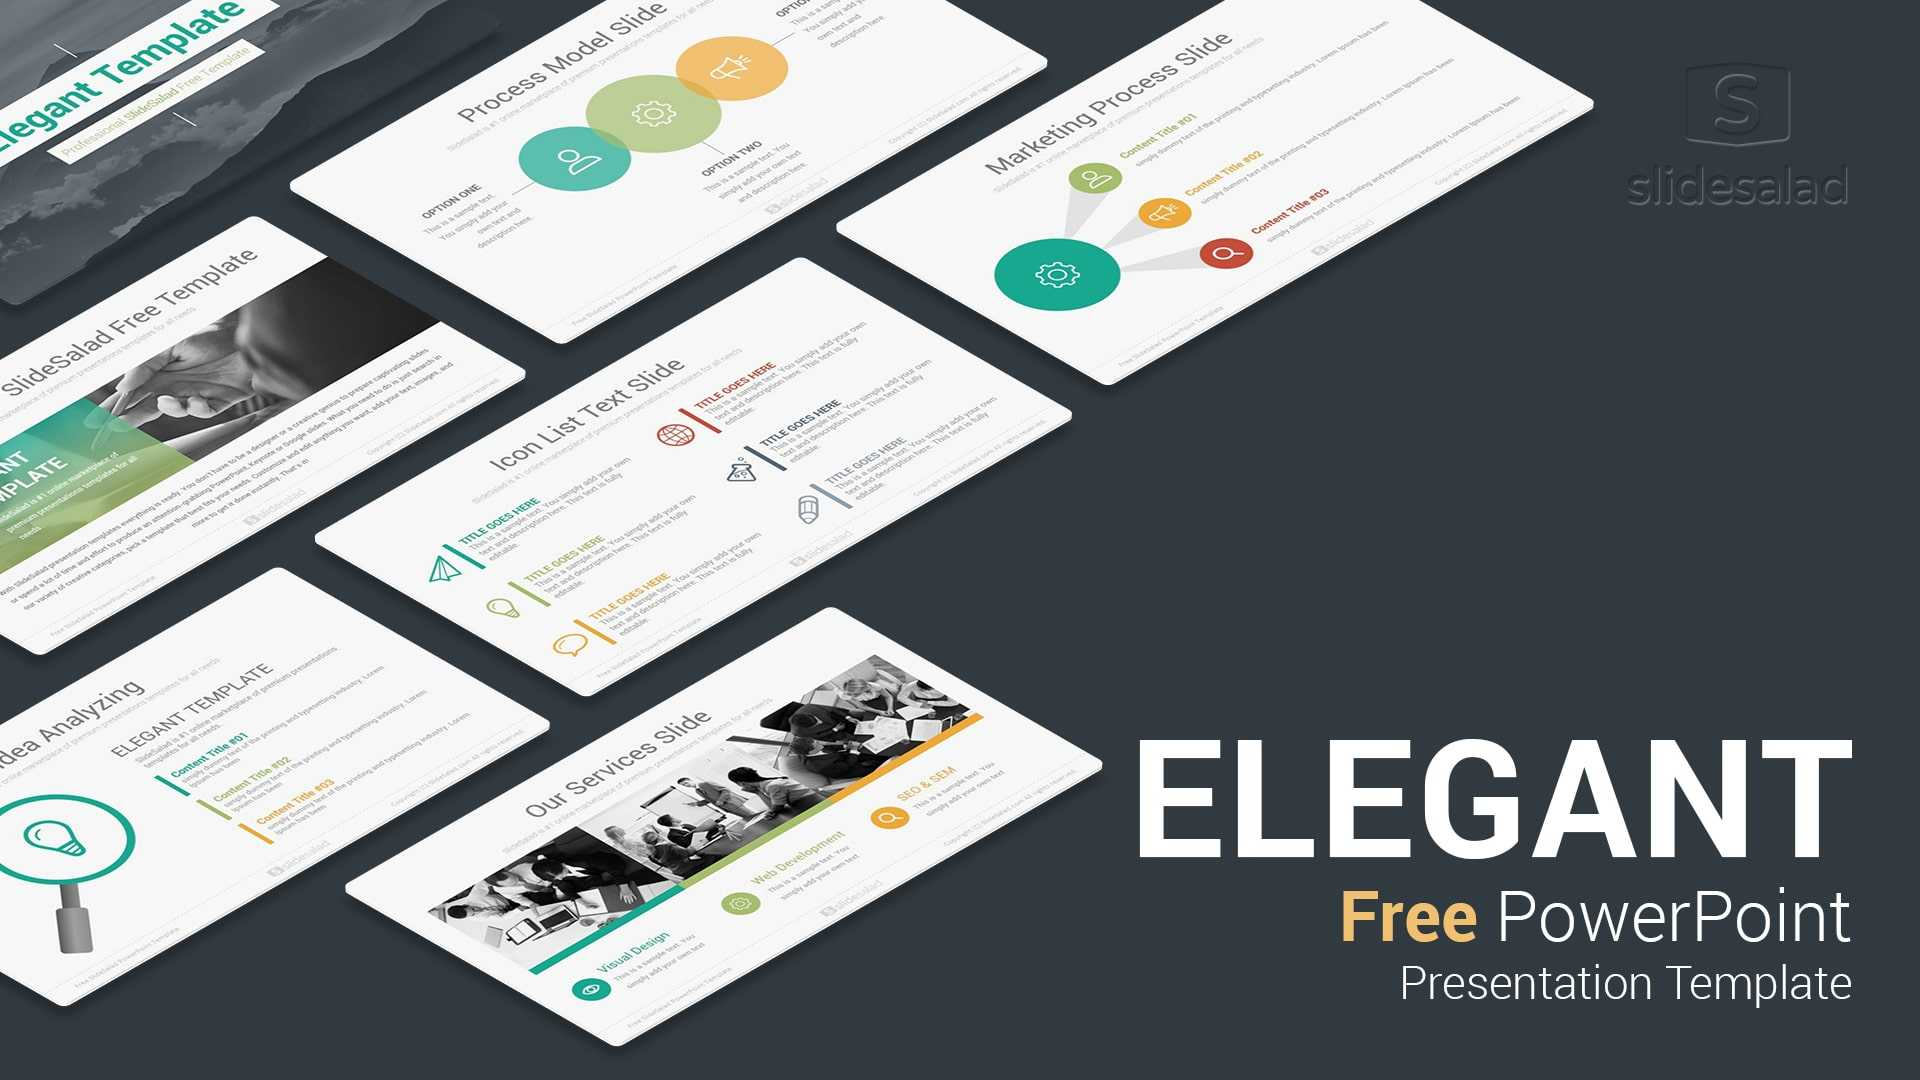 Elegant Free Download Powerpoint Templates For Presentation Regarding Powerpoint Sample Templates Free Download